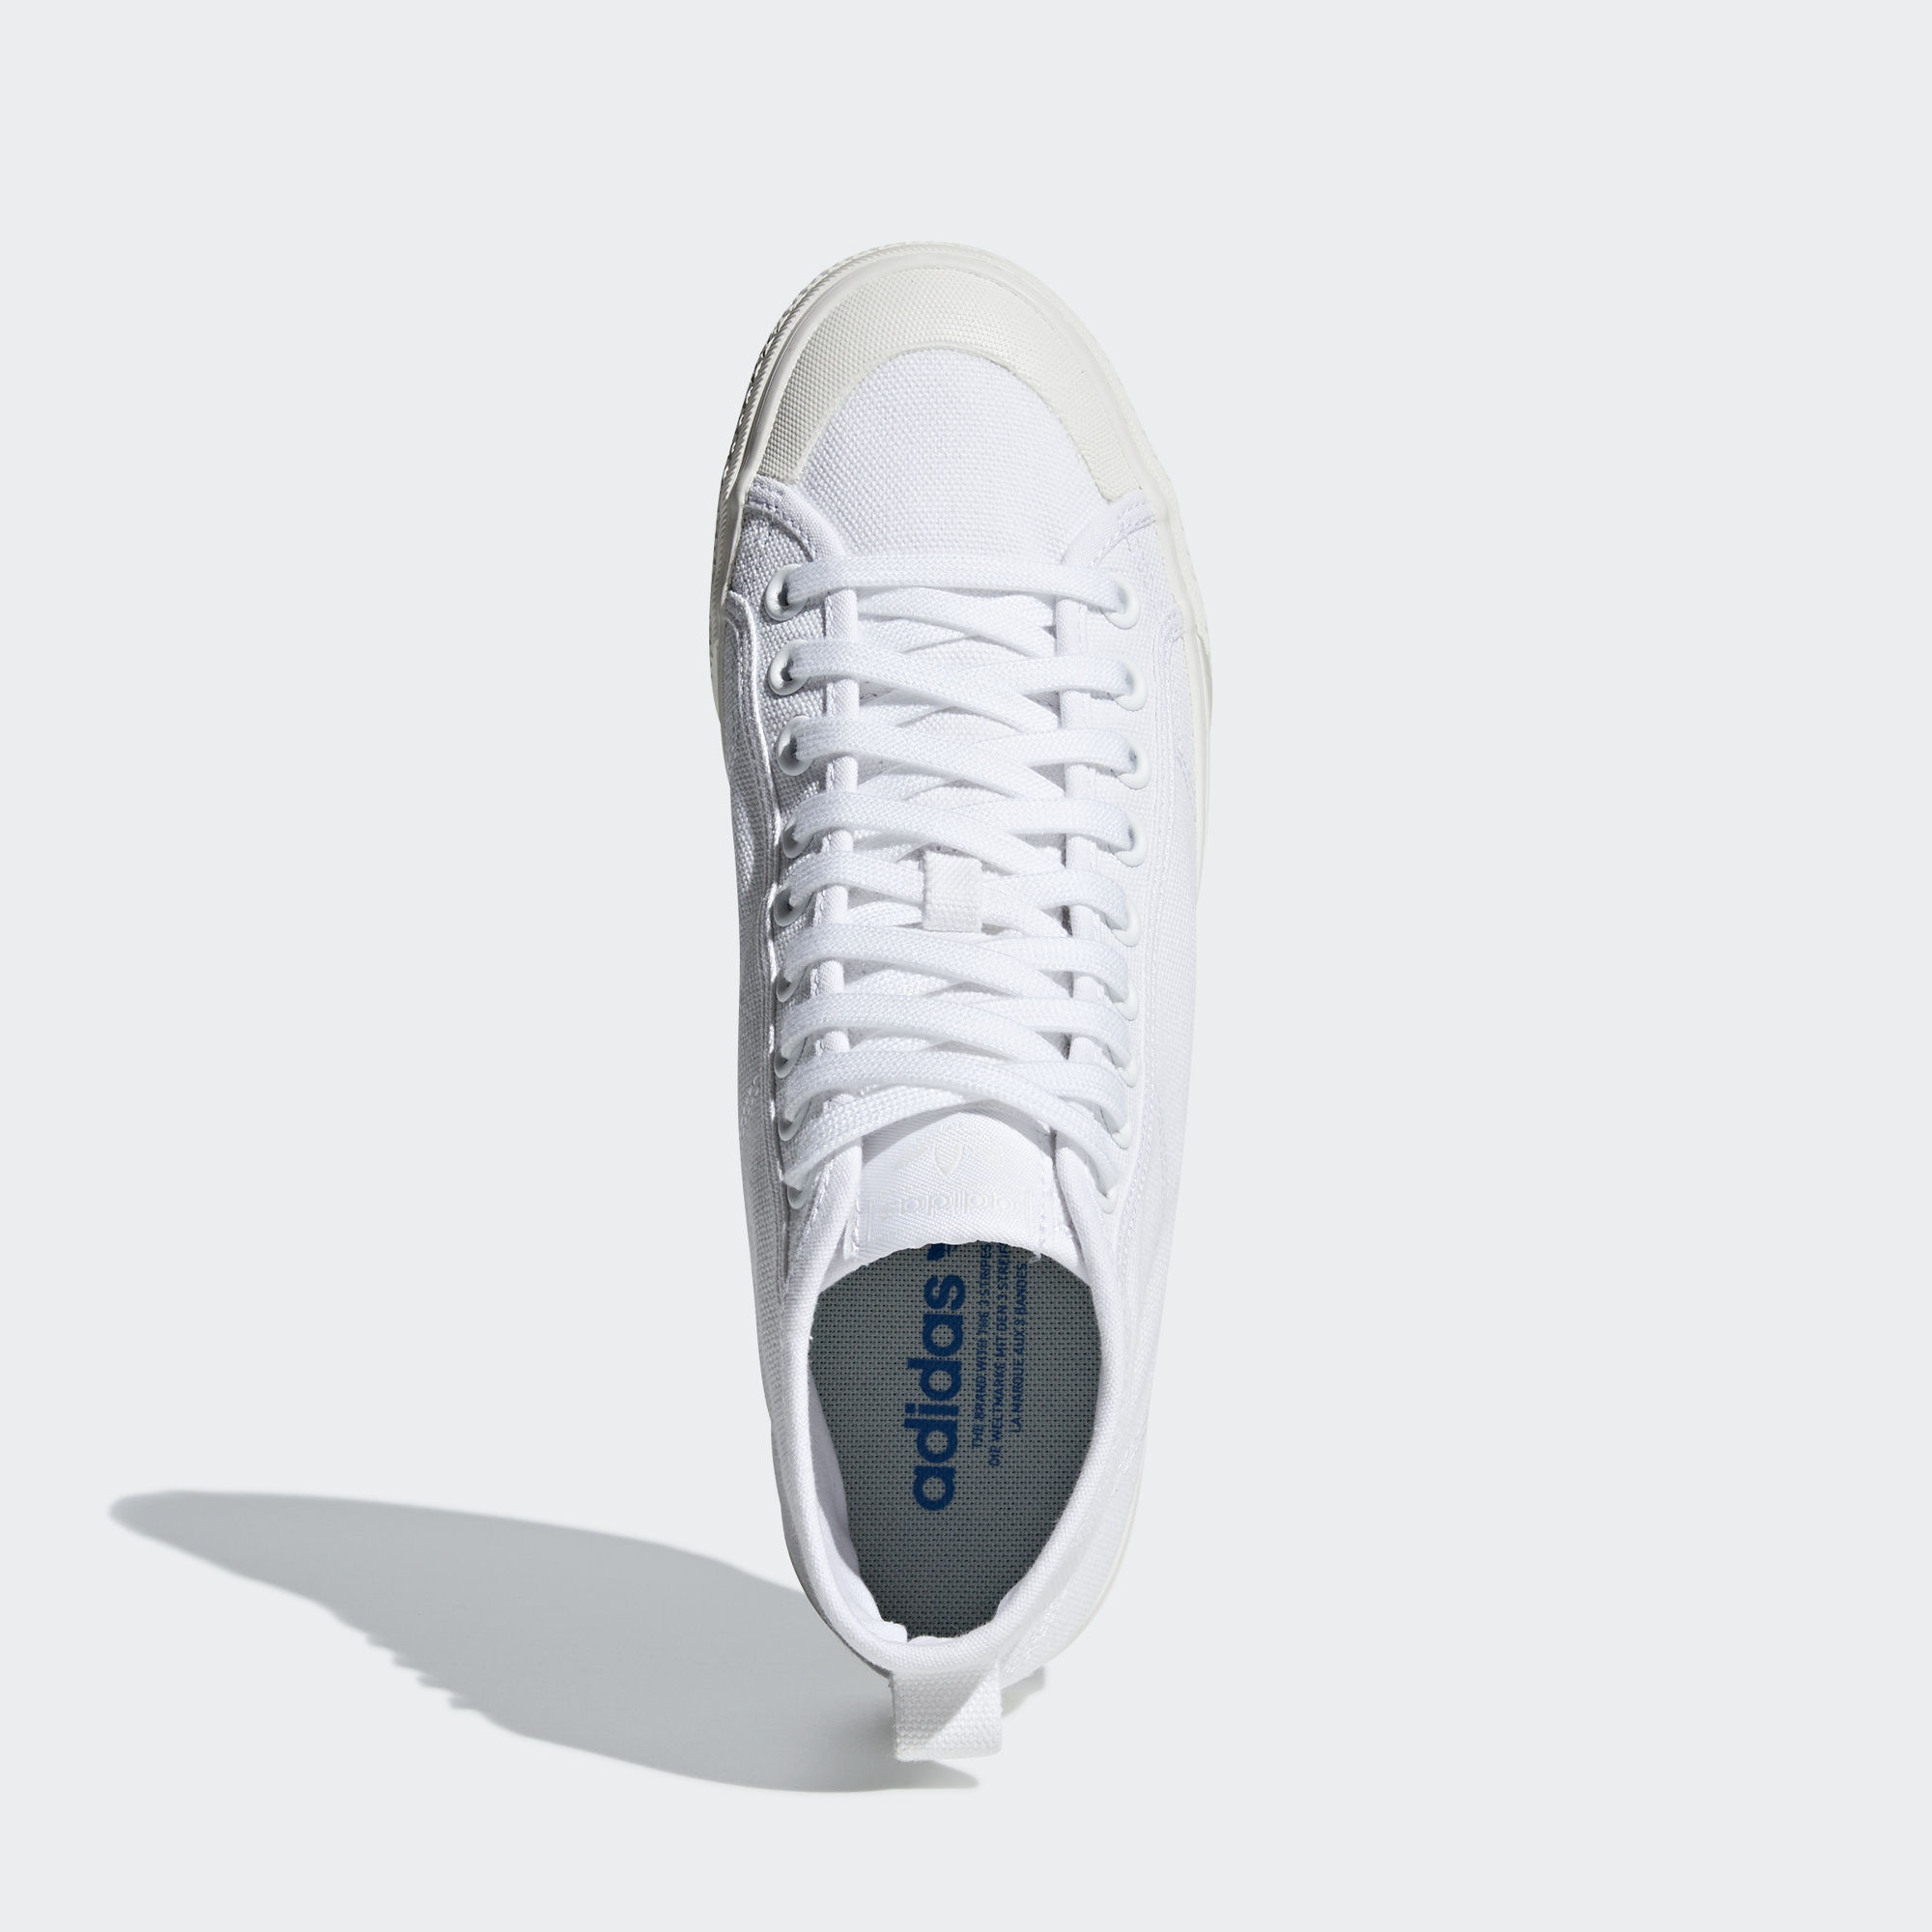 adidas Nizza Hi Cloud White